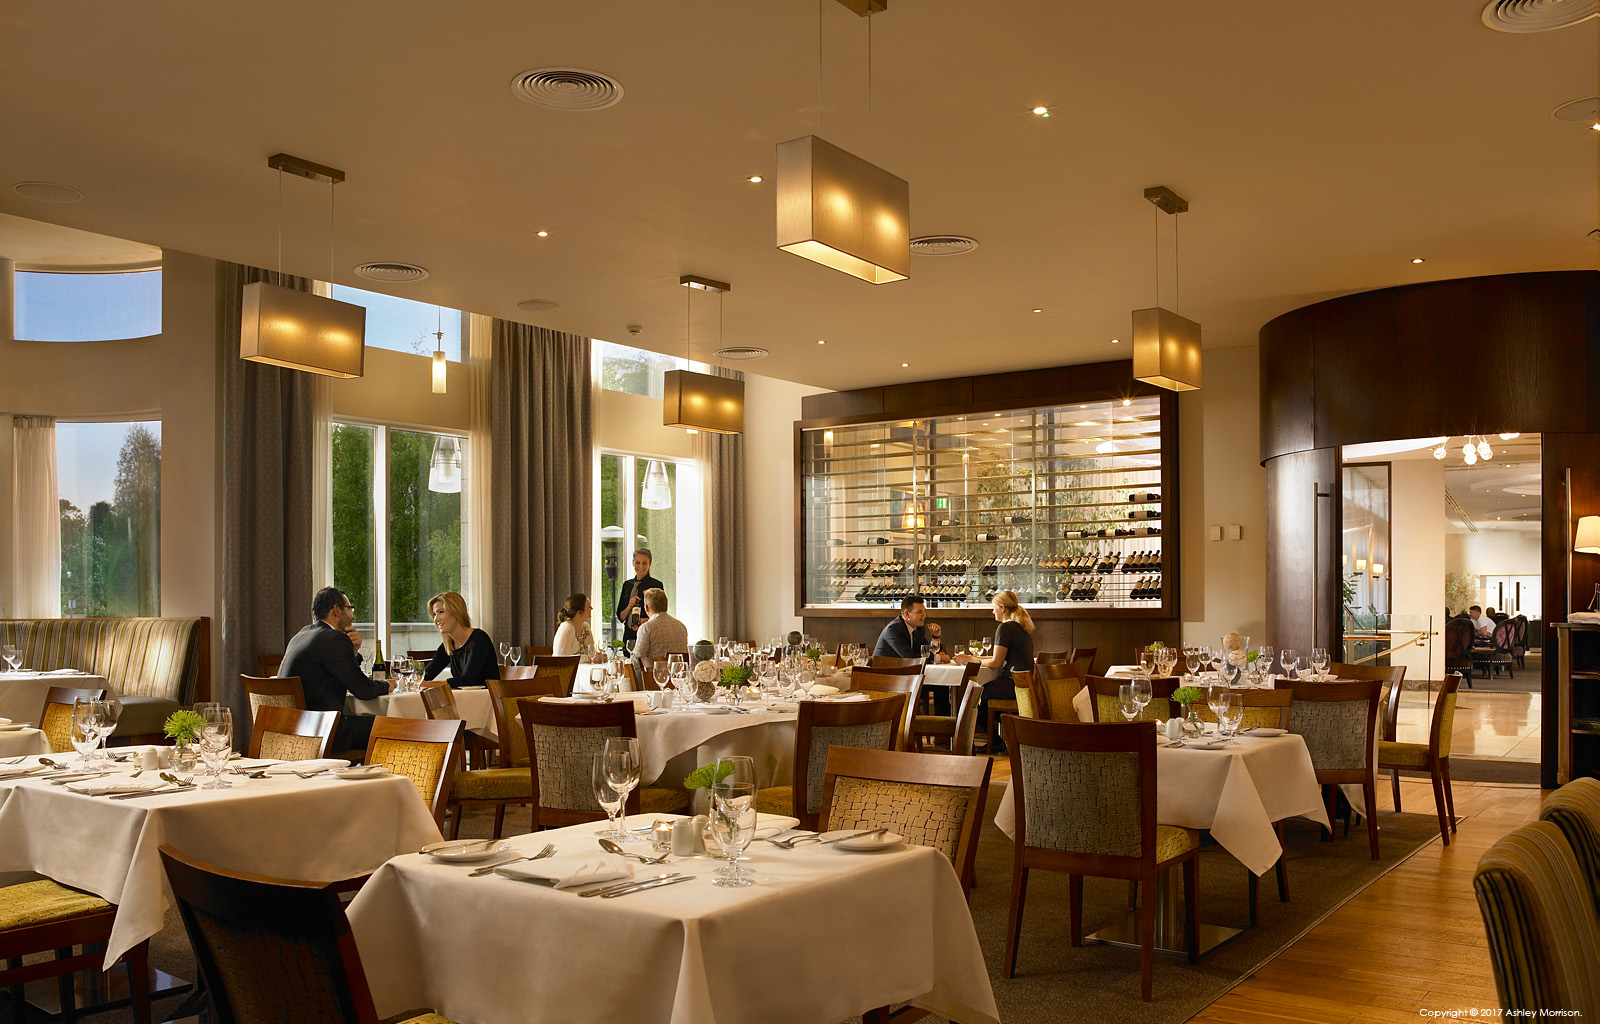 The IVY restaurant at Dunboyne Castle Hotel & Spa in County Meath.